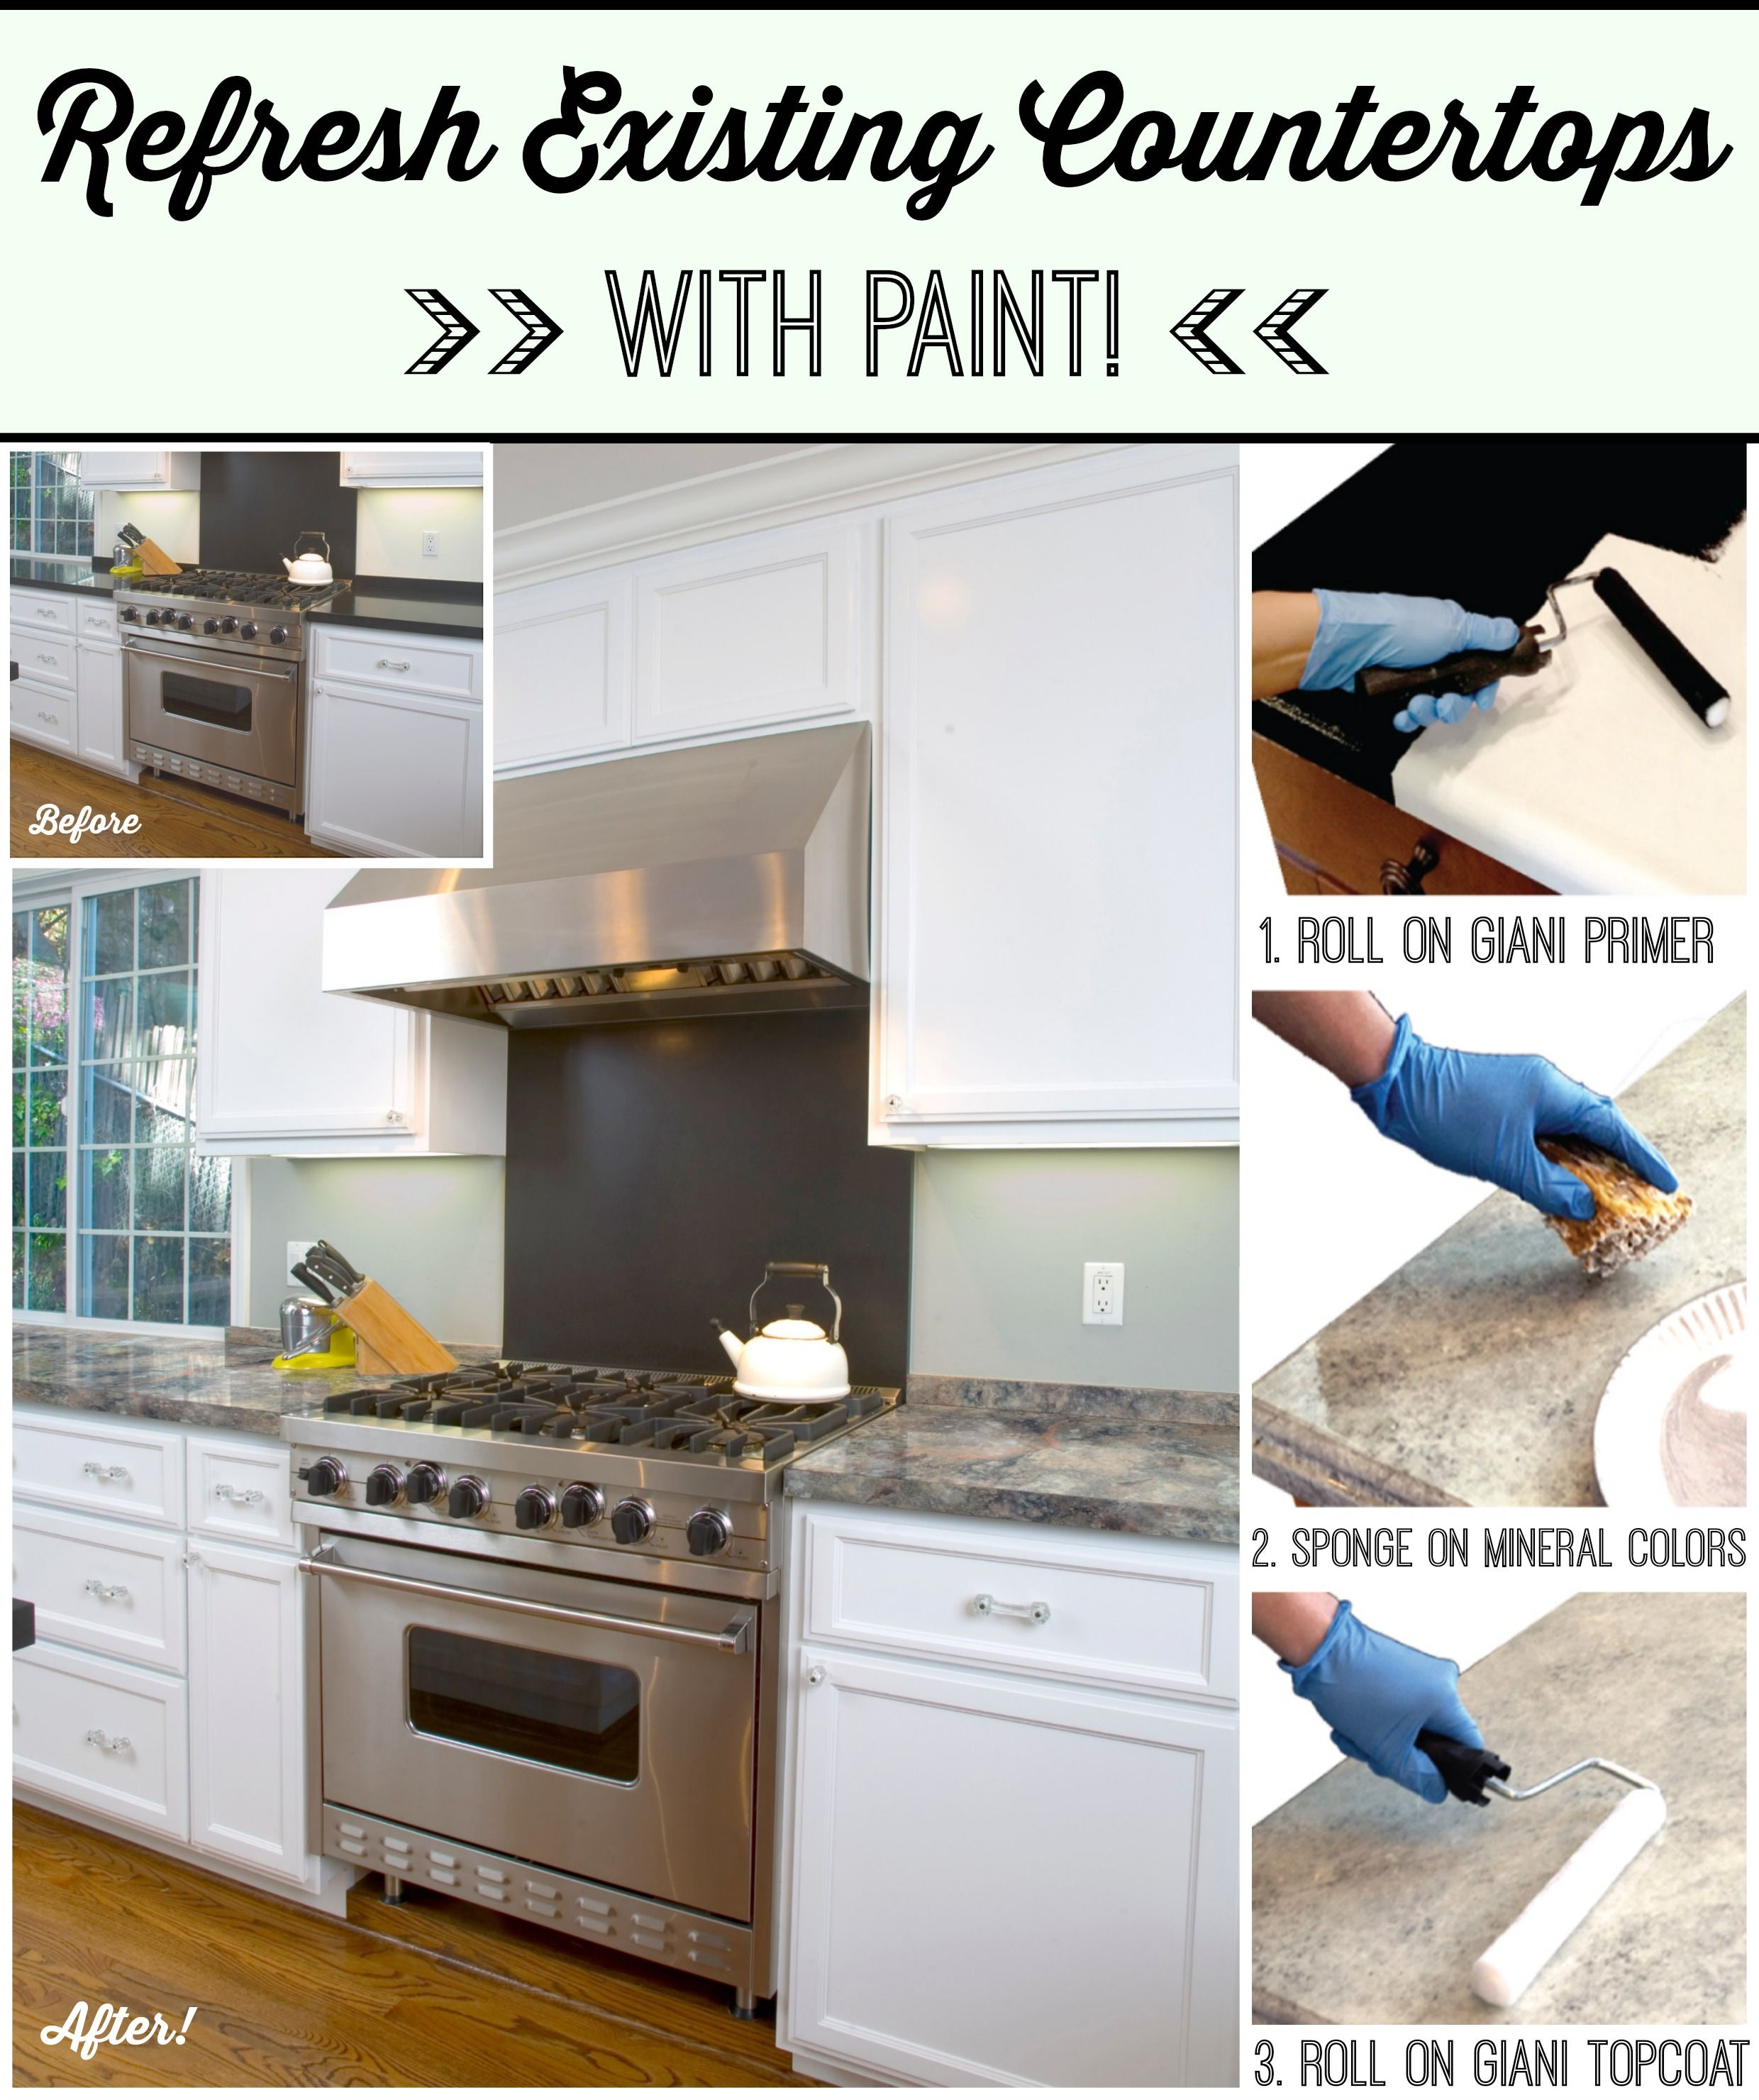 Kitchen Makeover On A Budget How To Update Your Existing Countertops For Under 100 Diy Www Gianigranite C Home Repairs Kitchen Makeover Uncluttered Kitchen